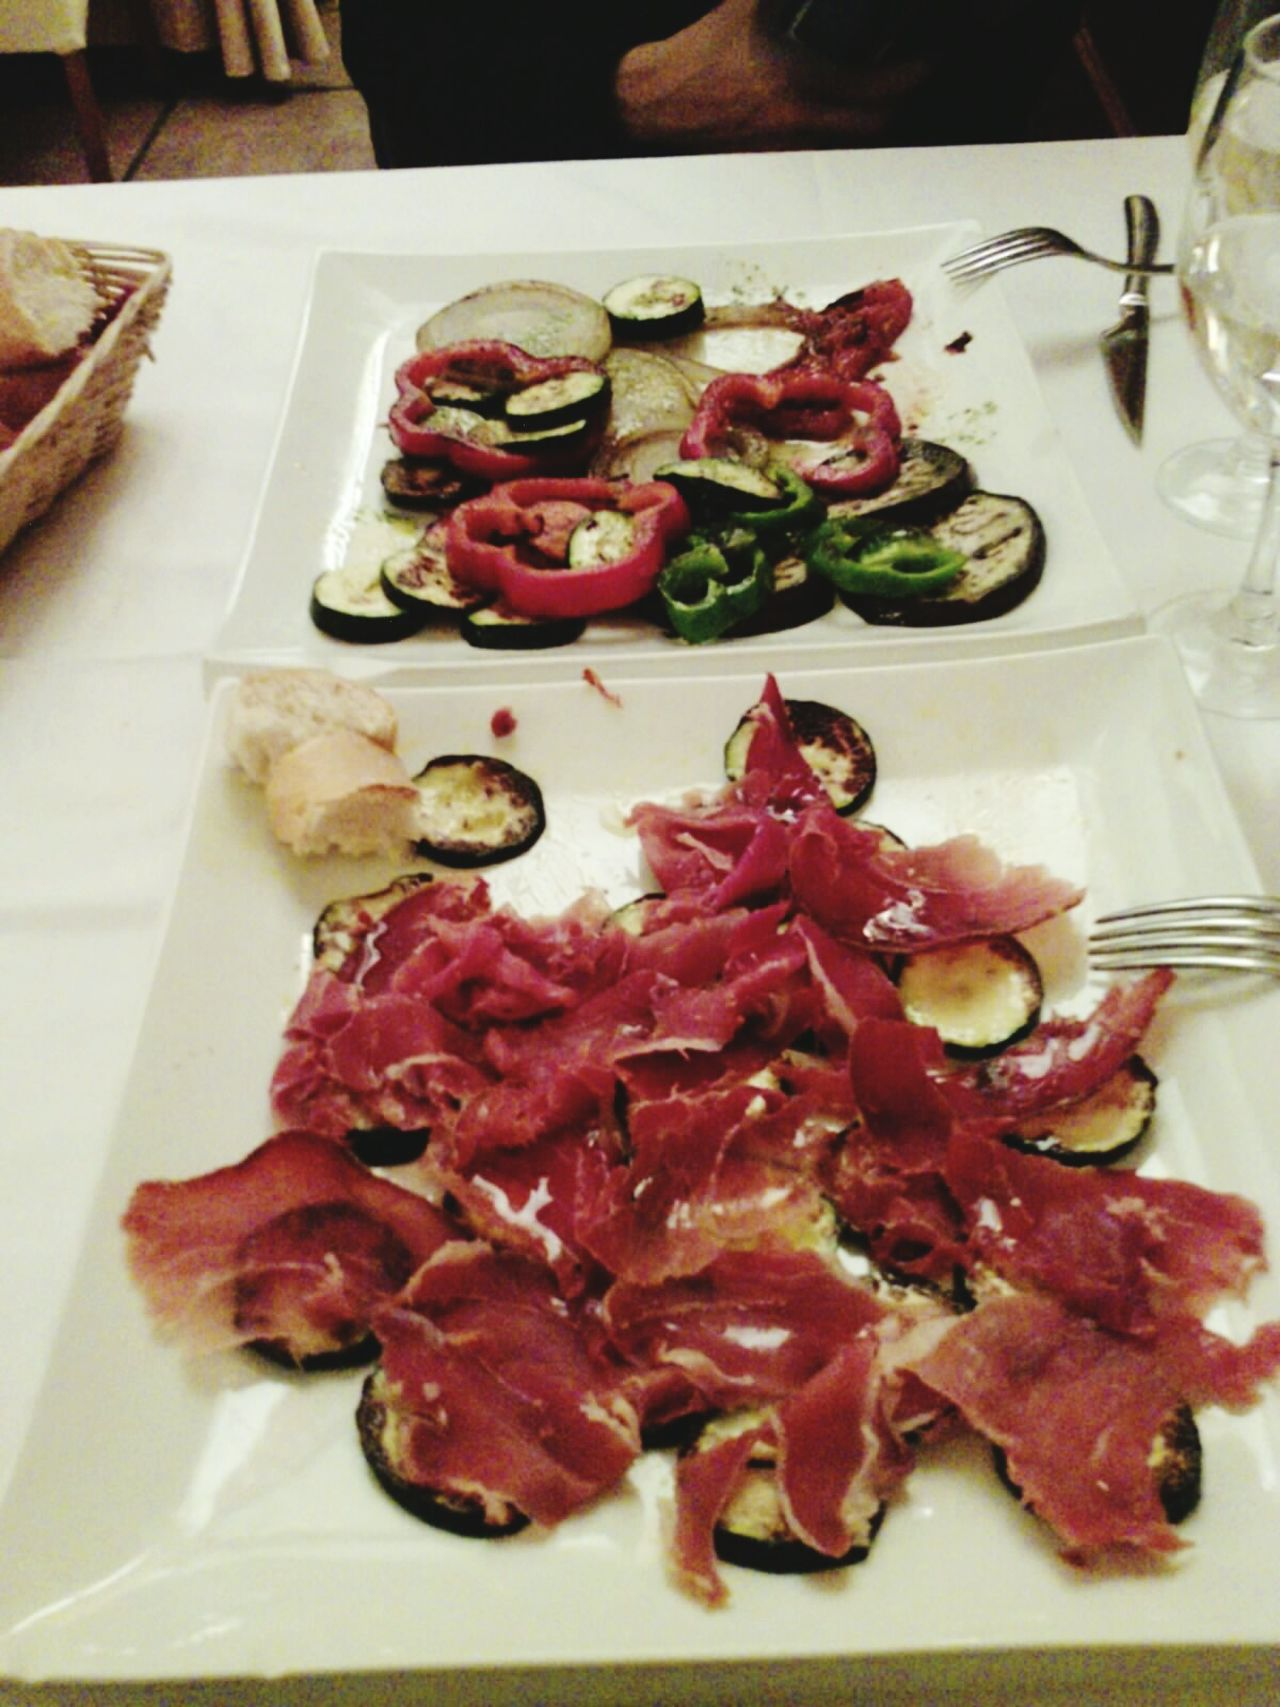 Named after the painter Vitore Carpaccio Raw Sirloin Meat And Vegetables Delicious DeliciousFood  raw food Food And Drink Meat Food Carpaccio Courgette Food Photography Italy🇮🇹